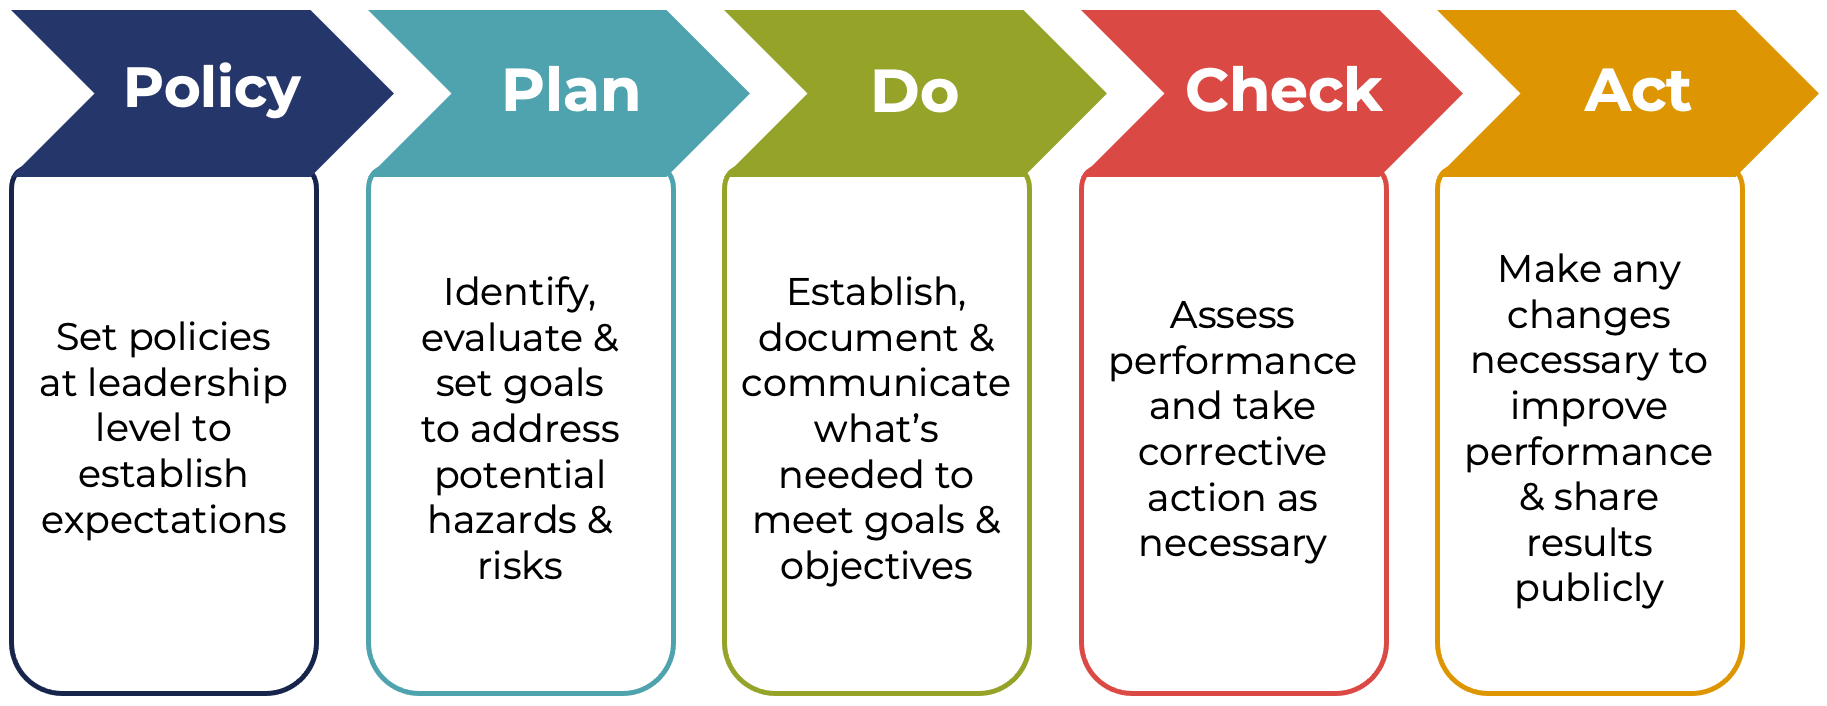 Responsible Care: Policy-Plan-Do-Check-Act Chart